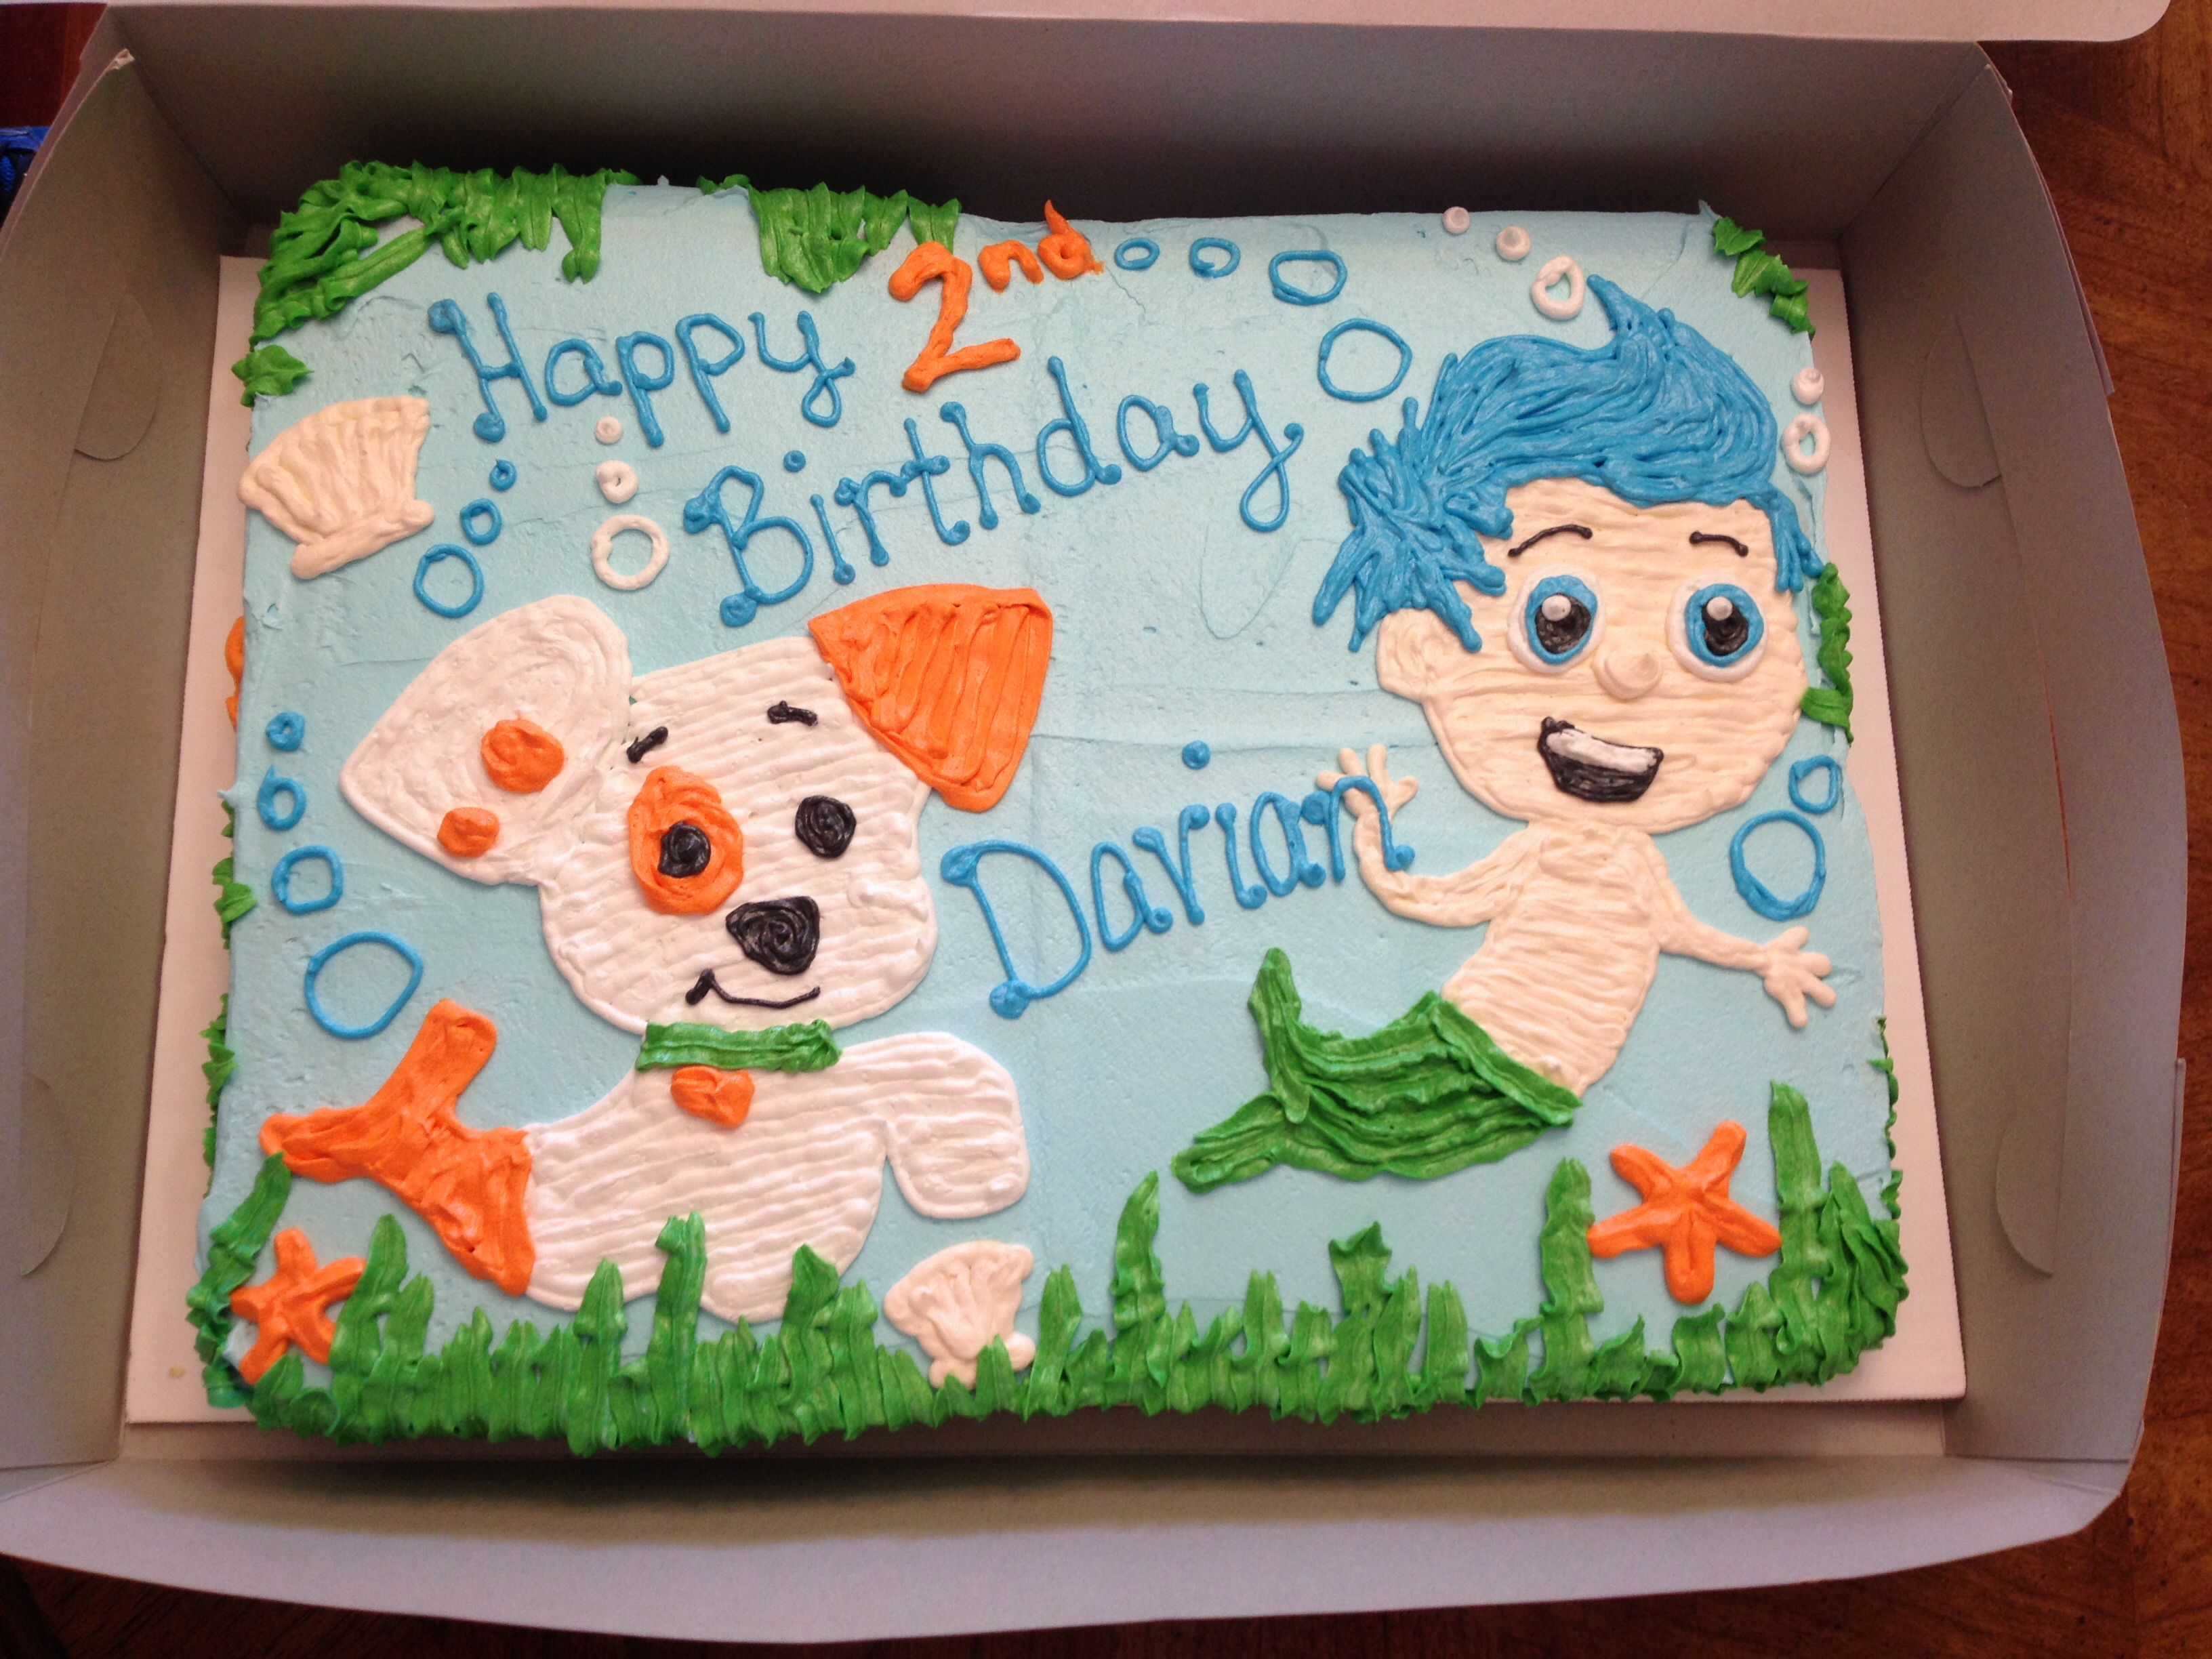 Magnificent Bubble Guppies Birthday Cake 1 2 Sheet Cake Decorated With Funny Birthday Cards Online Hetedamsfinfo